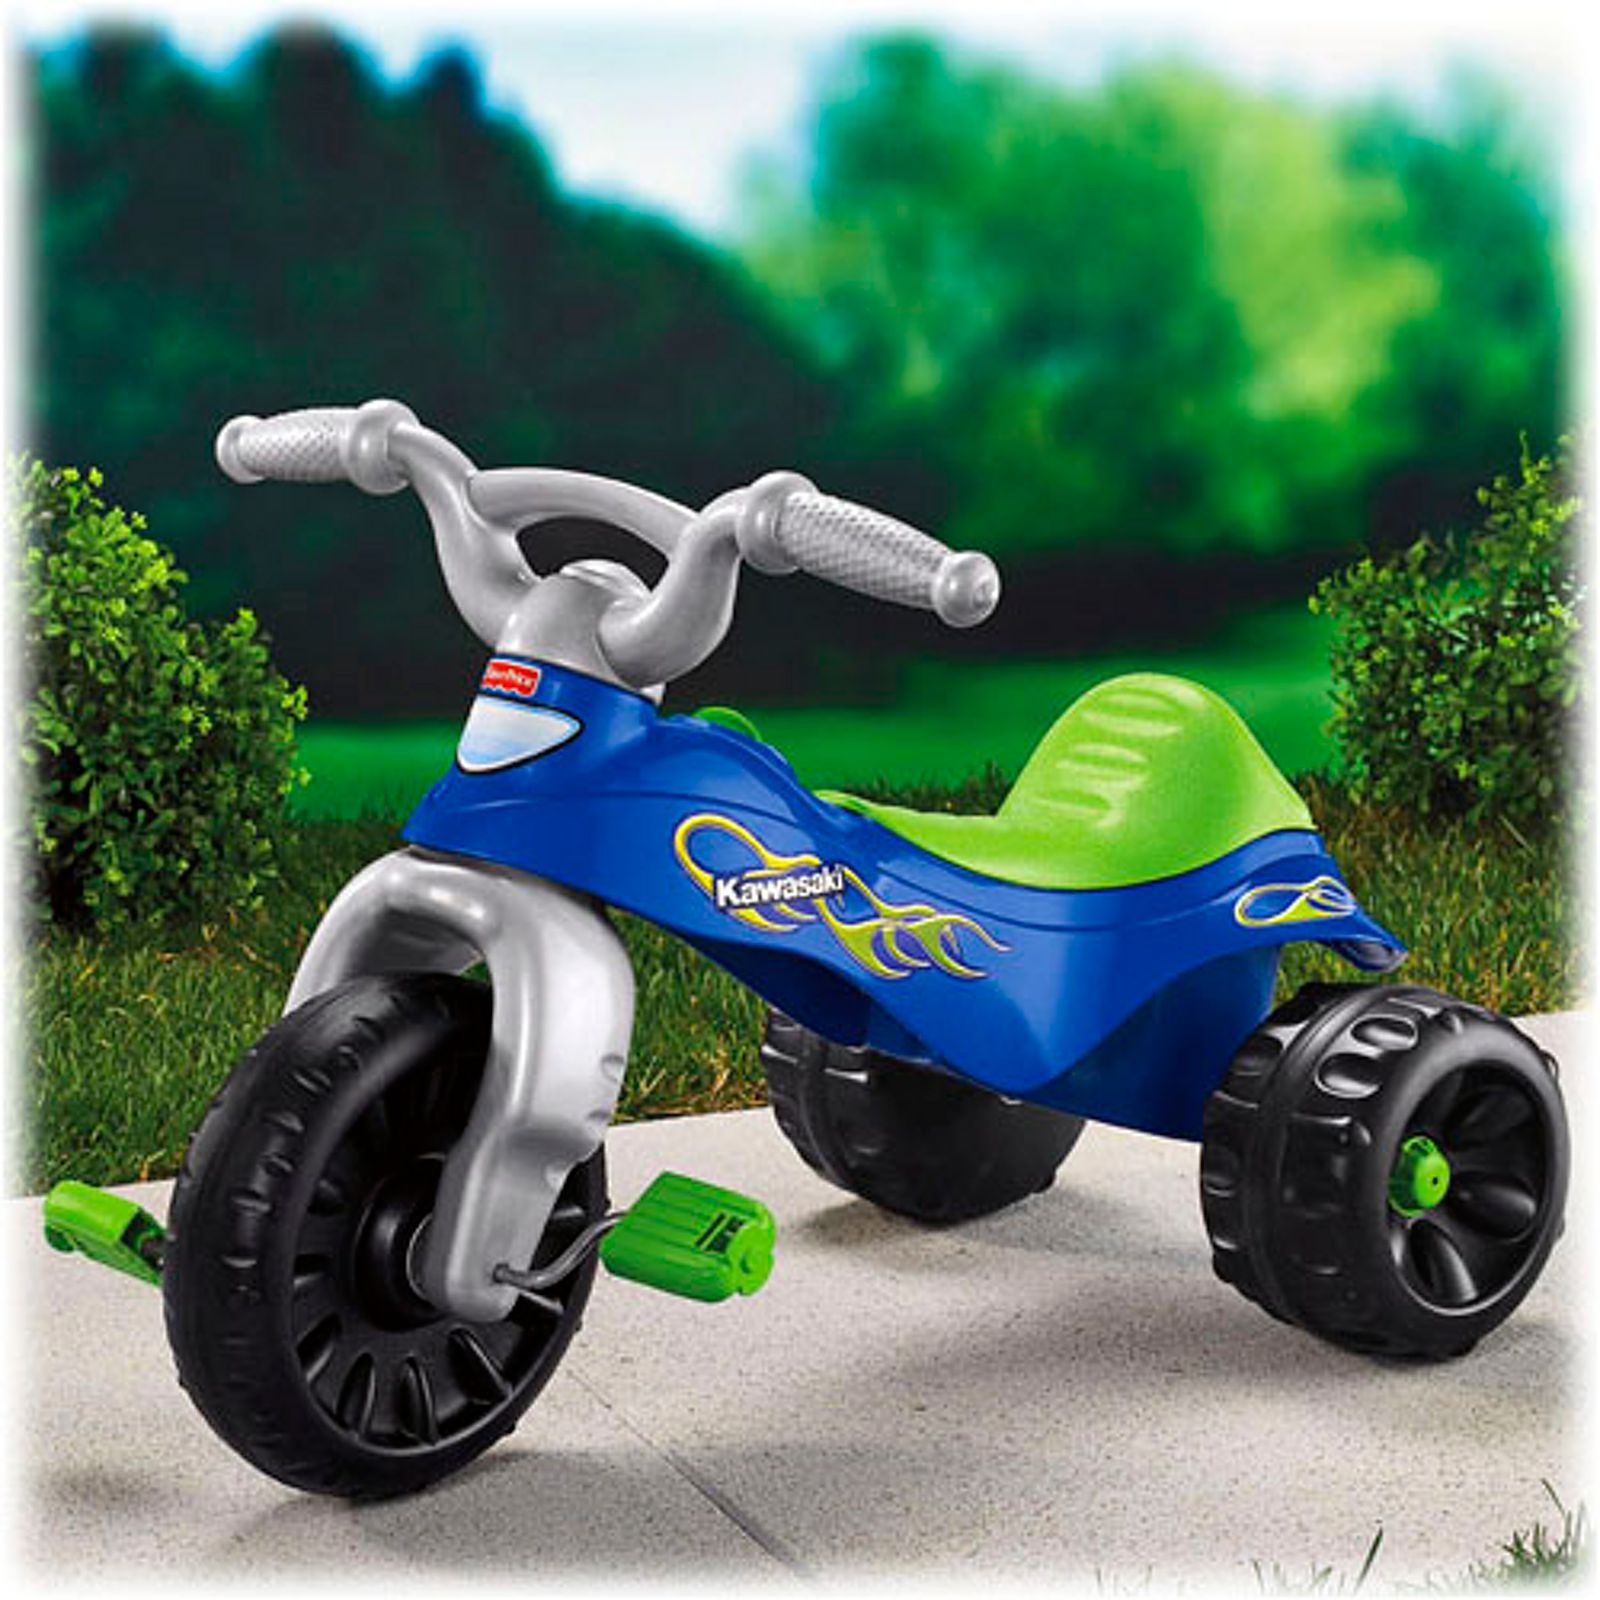 Kawasaki Tough Trike Fisher Price Harley Davidson Ride On